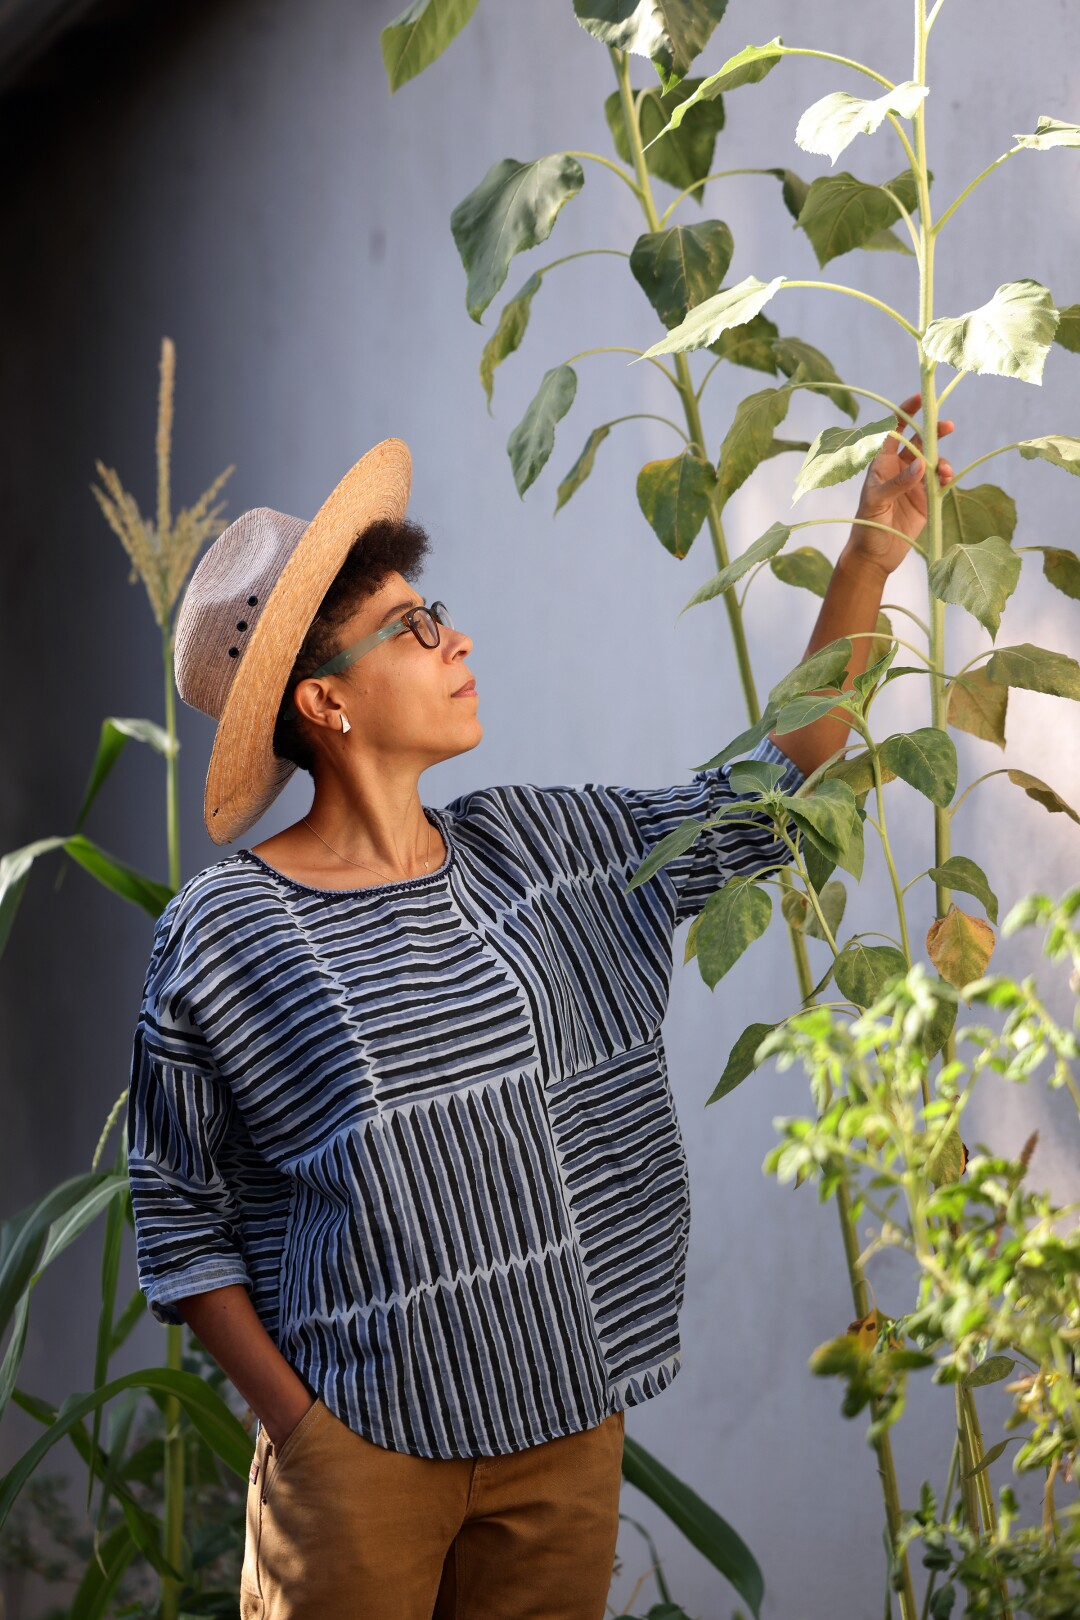 A woman wearing a straw hat stands next to tall plants.